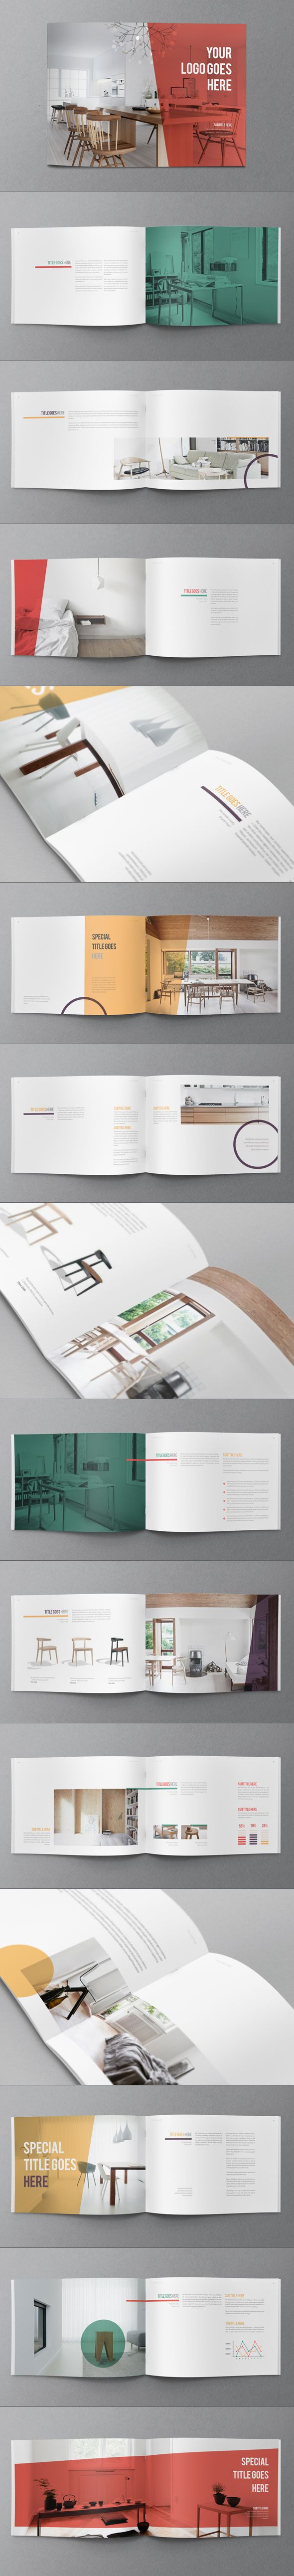 Colorful Minimal Brochure. Download here: http://graphicriver.net/item/colorful-minimal-brochure/9119251?ref=abradesign #design #brochure